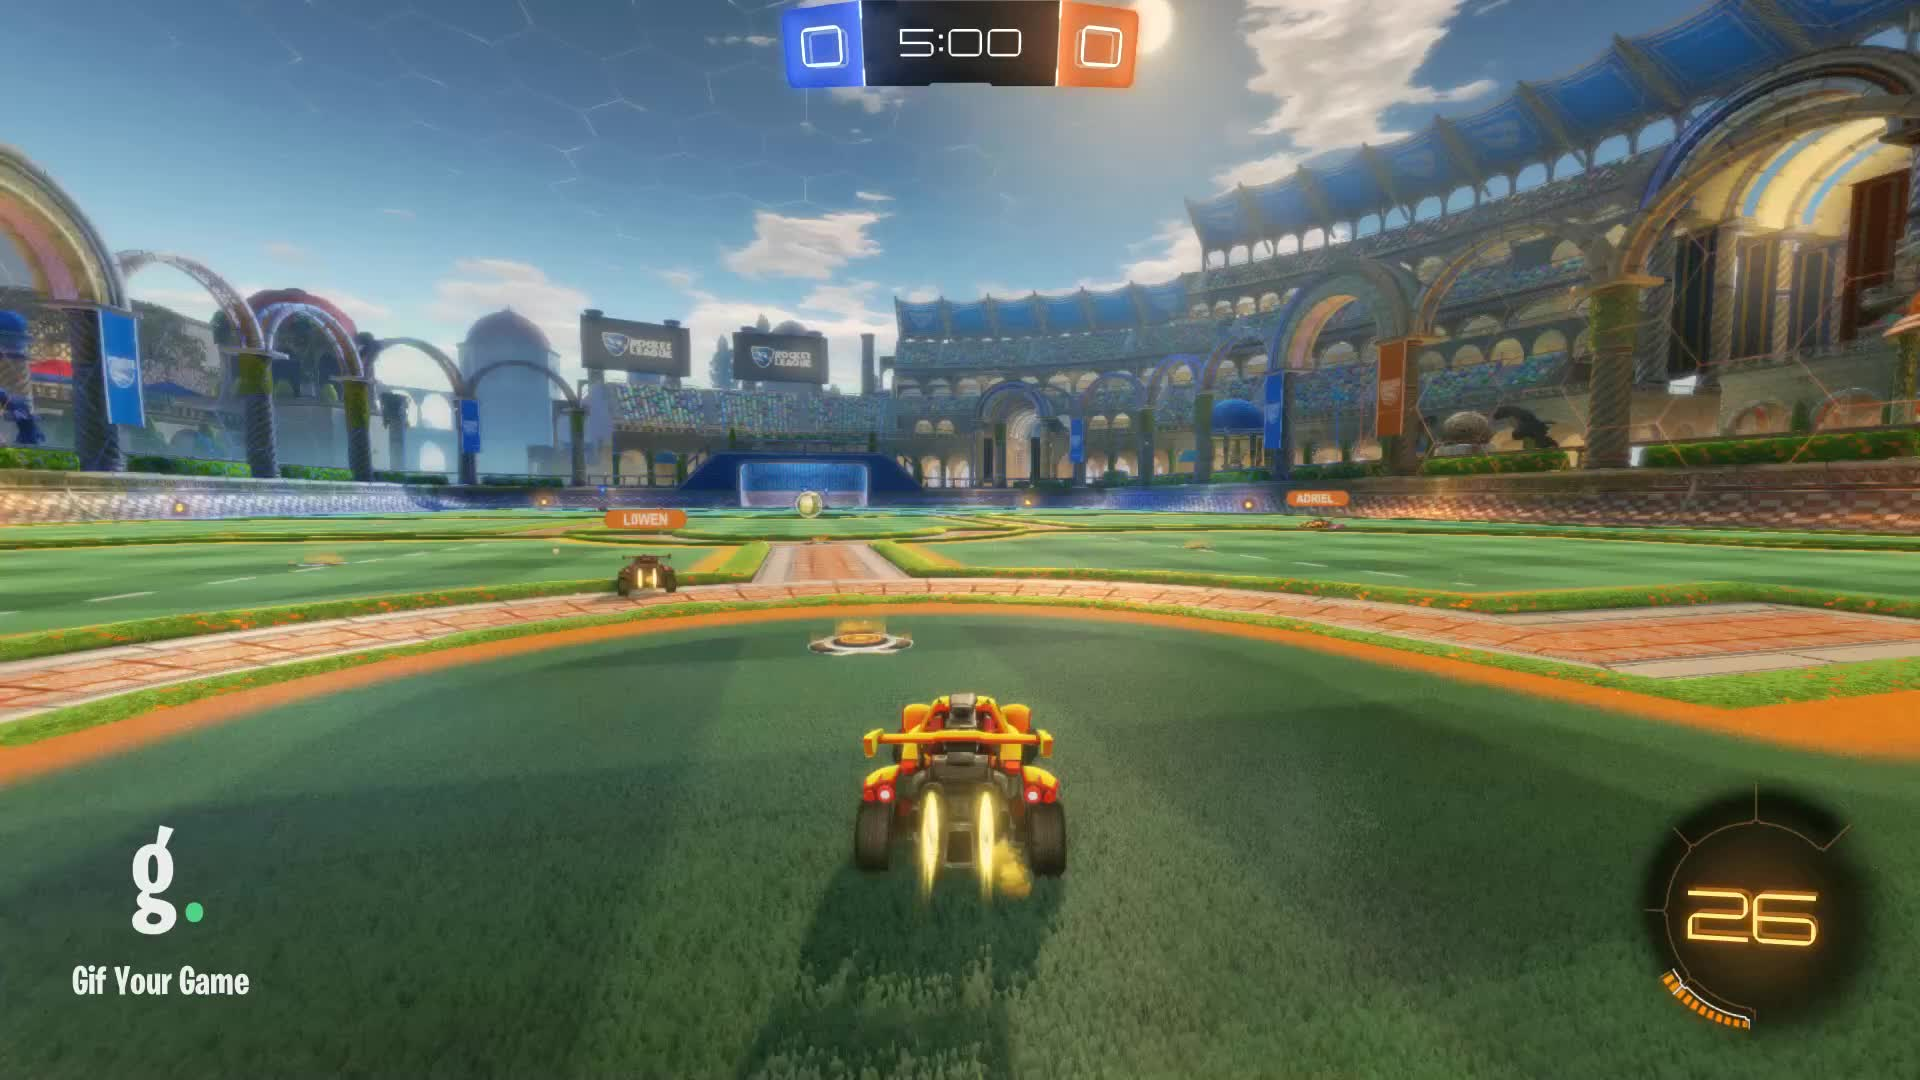 Gif Your Game, GifYourGame, Goal, Rocket League, RocketLeague, twiist., Goal 1: twiist. GIFs